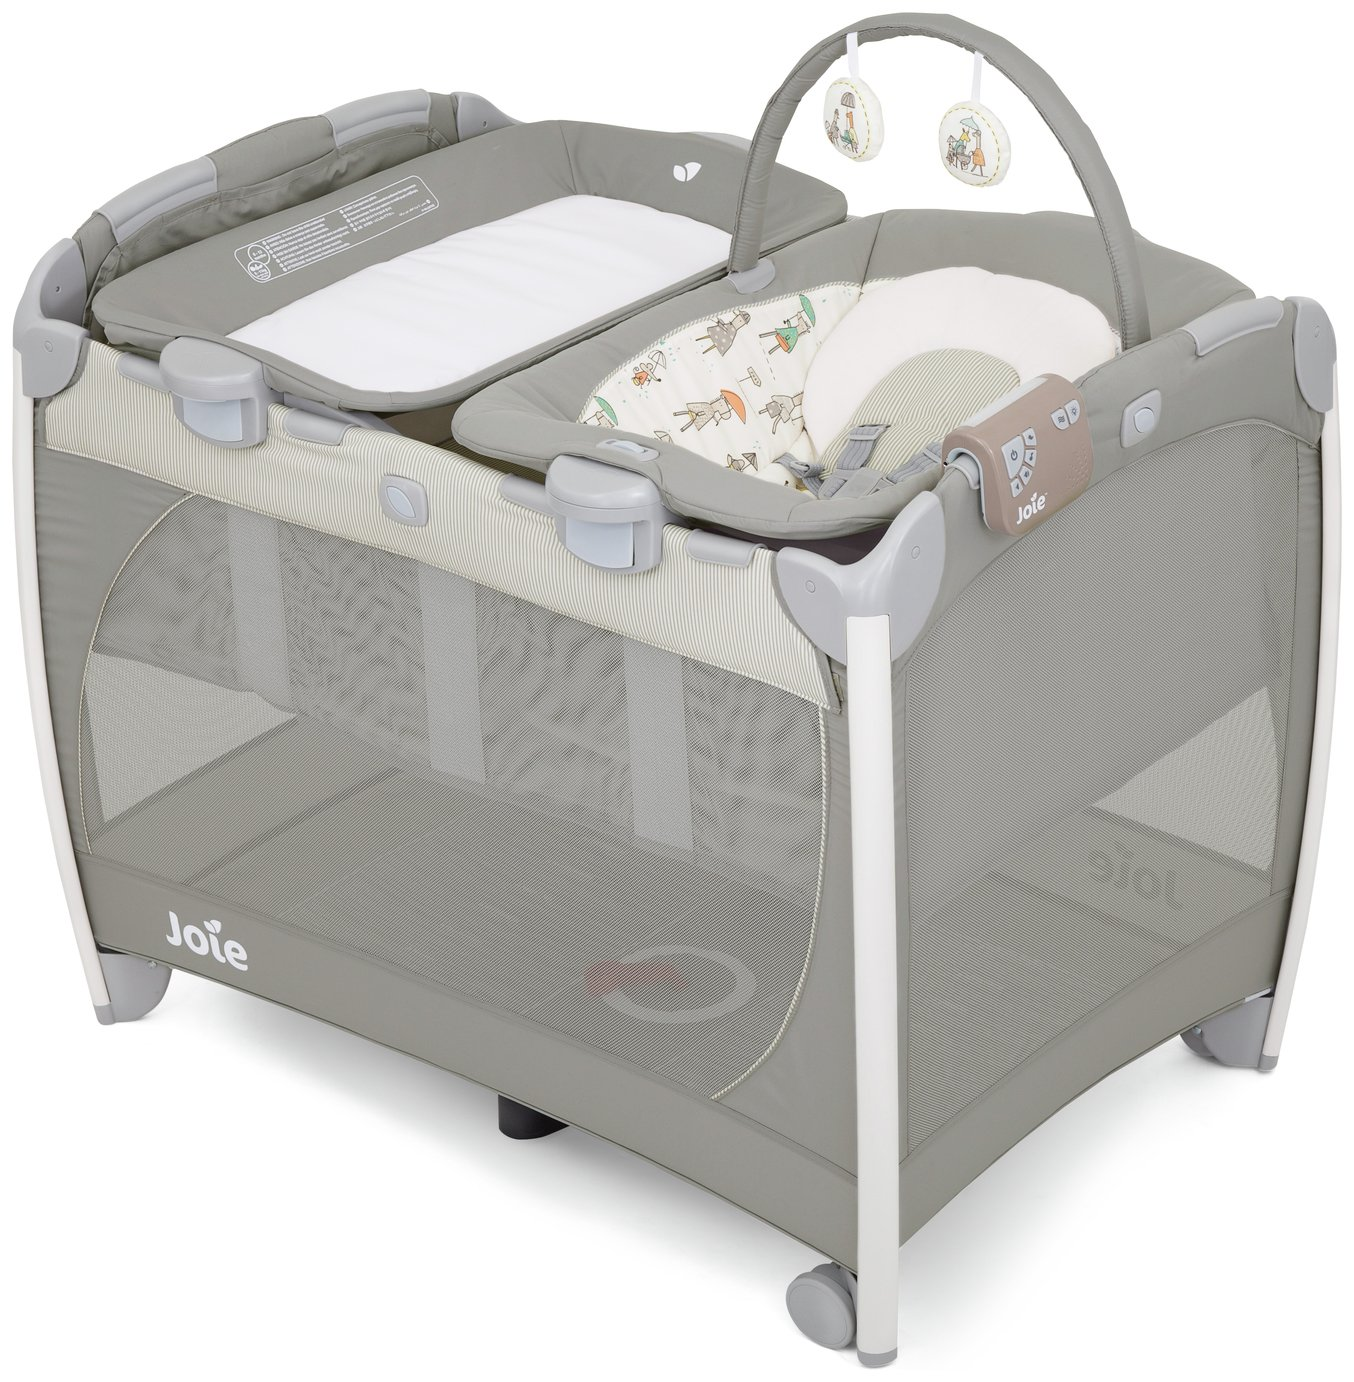 Image of Joie Excursion Change & Bounce Travel Cot - In the Rain